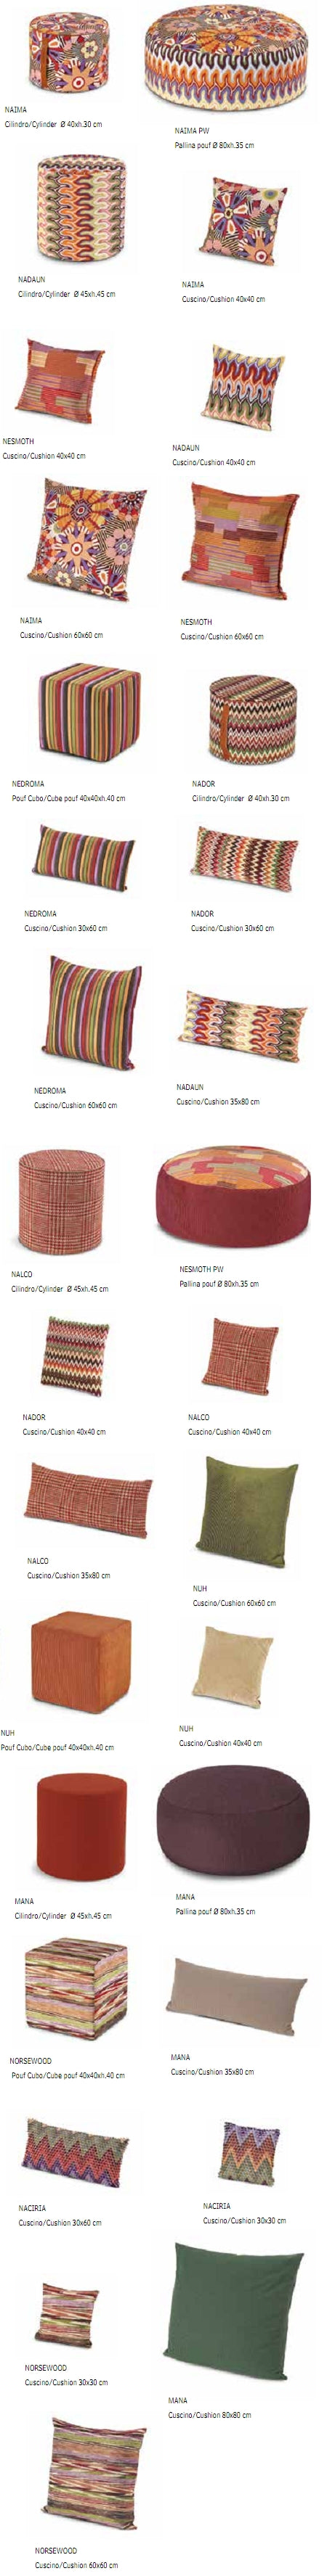 Missoni Cushion and Footstool Collection - Murrine - italydesign.com